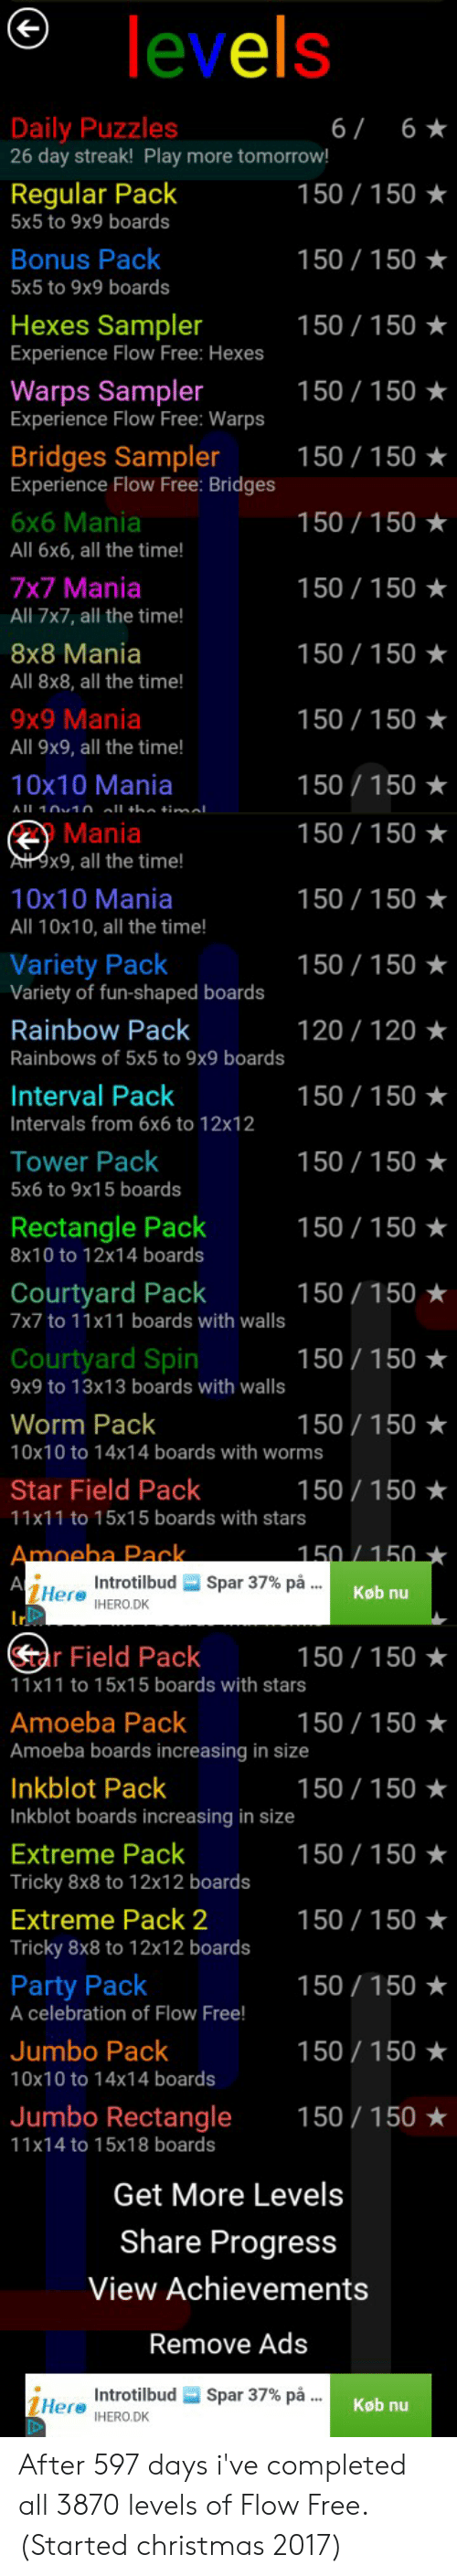 Levels Daily Puzzles 26 Day Streak Play More Tomorrow 6 6 150 150 Regular Pack 5x5 To 9x9 Boards 150 150 Bonus Pack 5x5 To 9x9 Boards 150 150 Hexes Sampler Experience